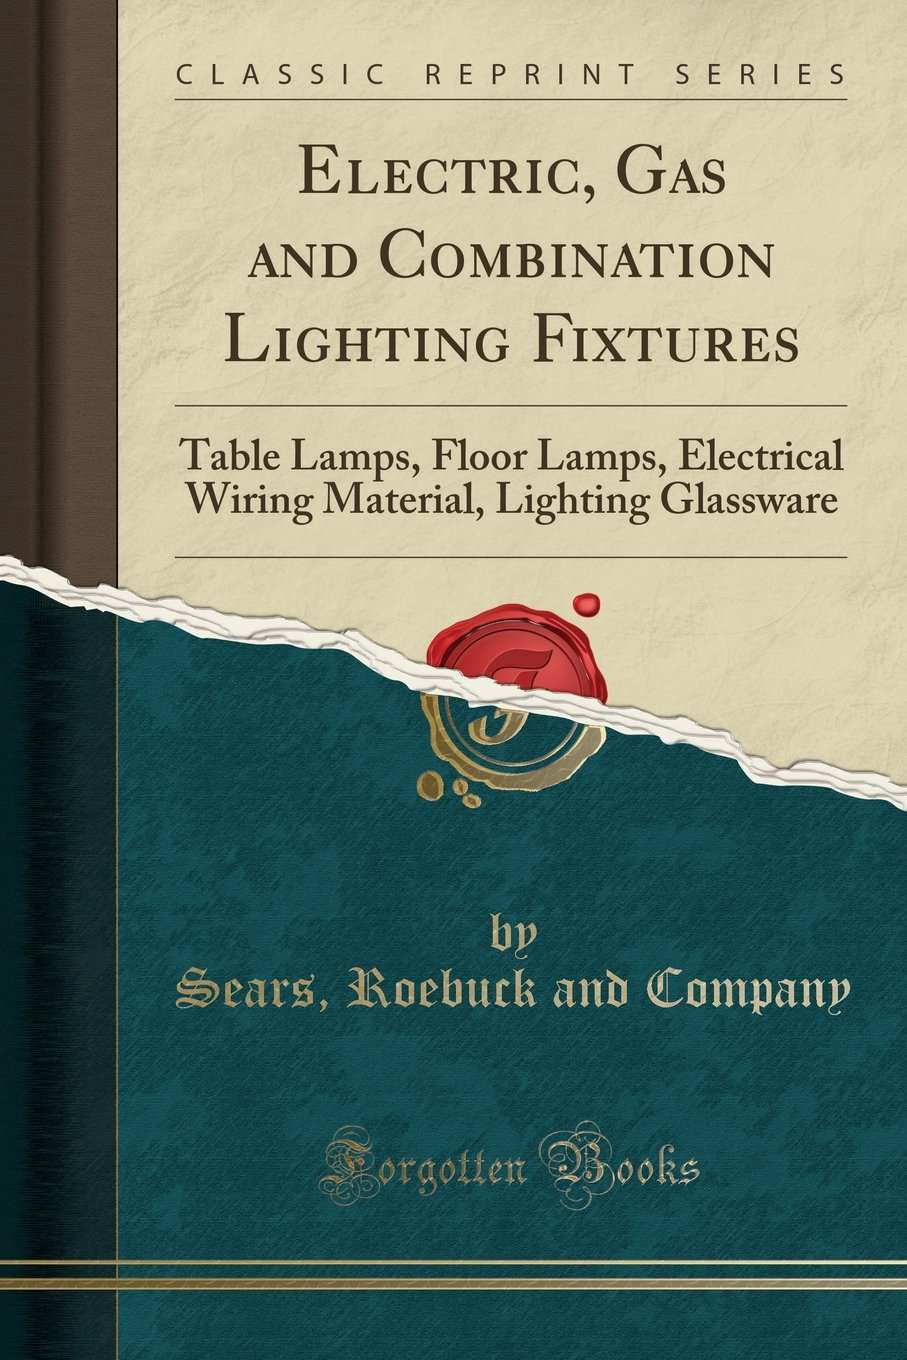 Buy Electric Gas And Combination Lighting Fixtures Table Lamps History Of Electrical Wiring Floor Material Glassware Classic Reprint Book Online